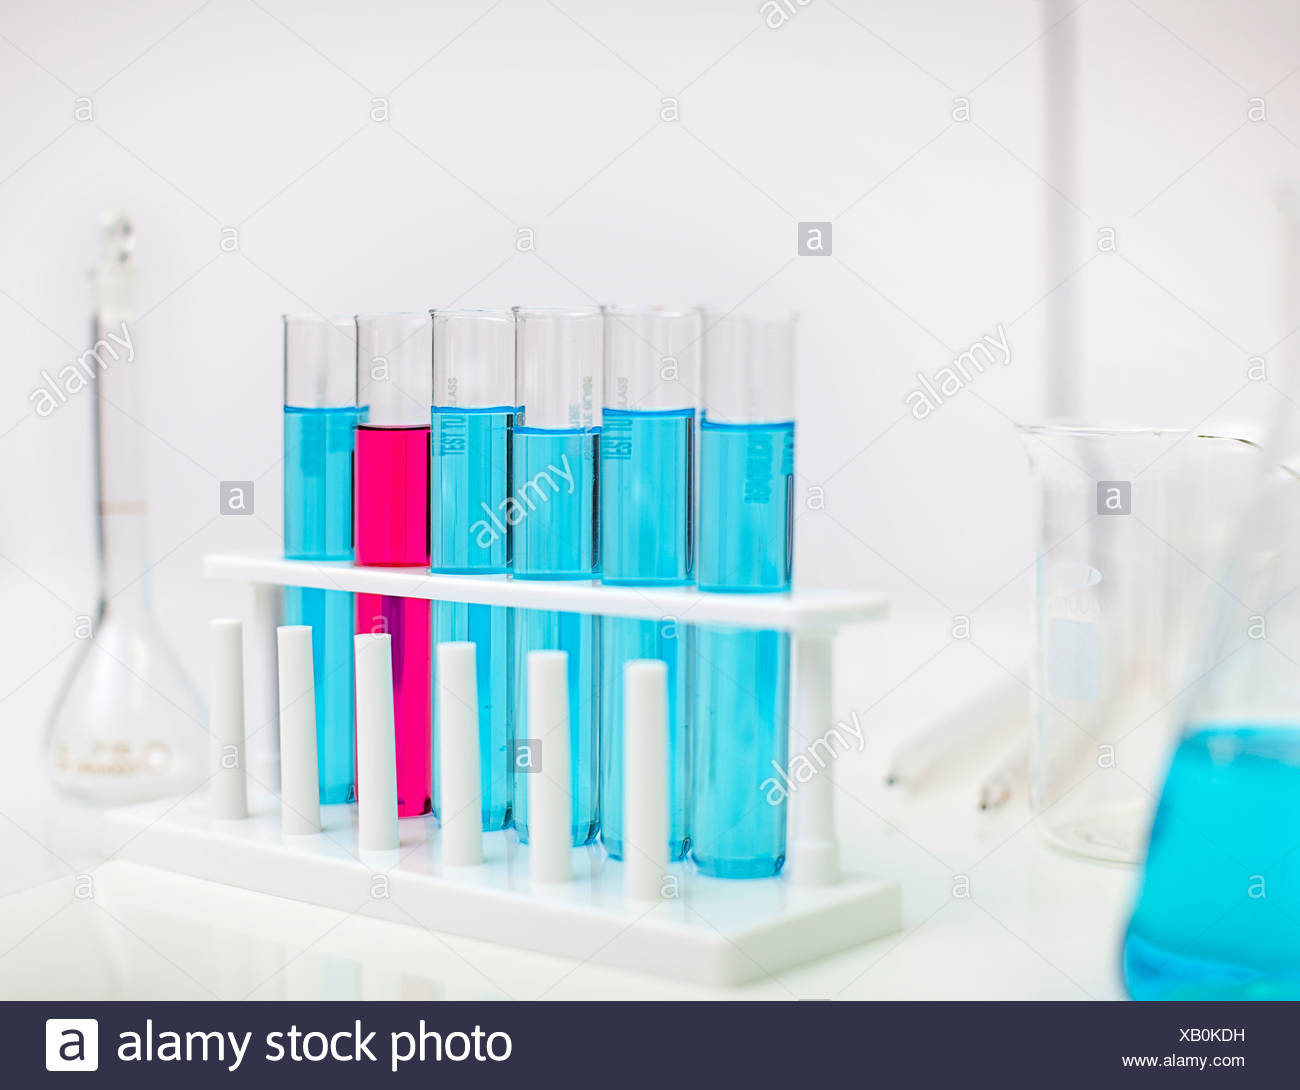 Rack of test tubes in lab - Stock Image